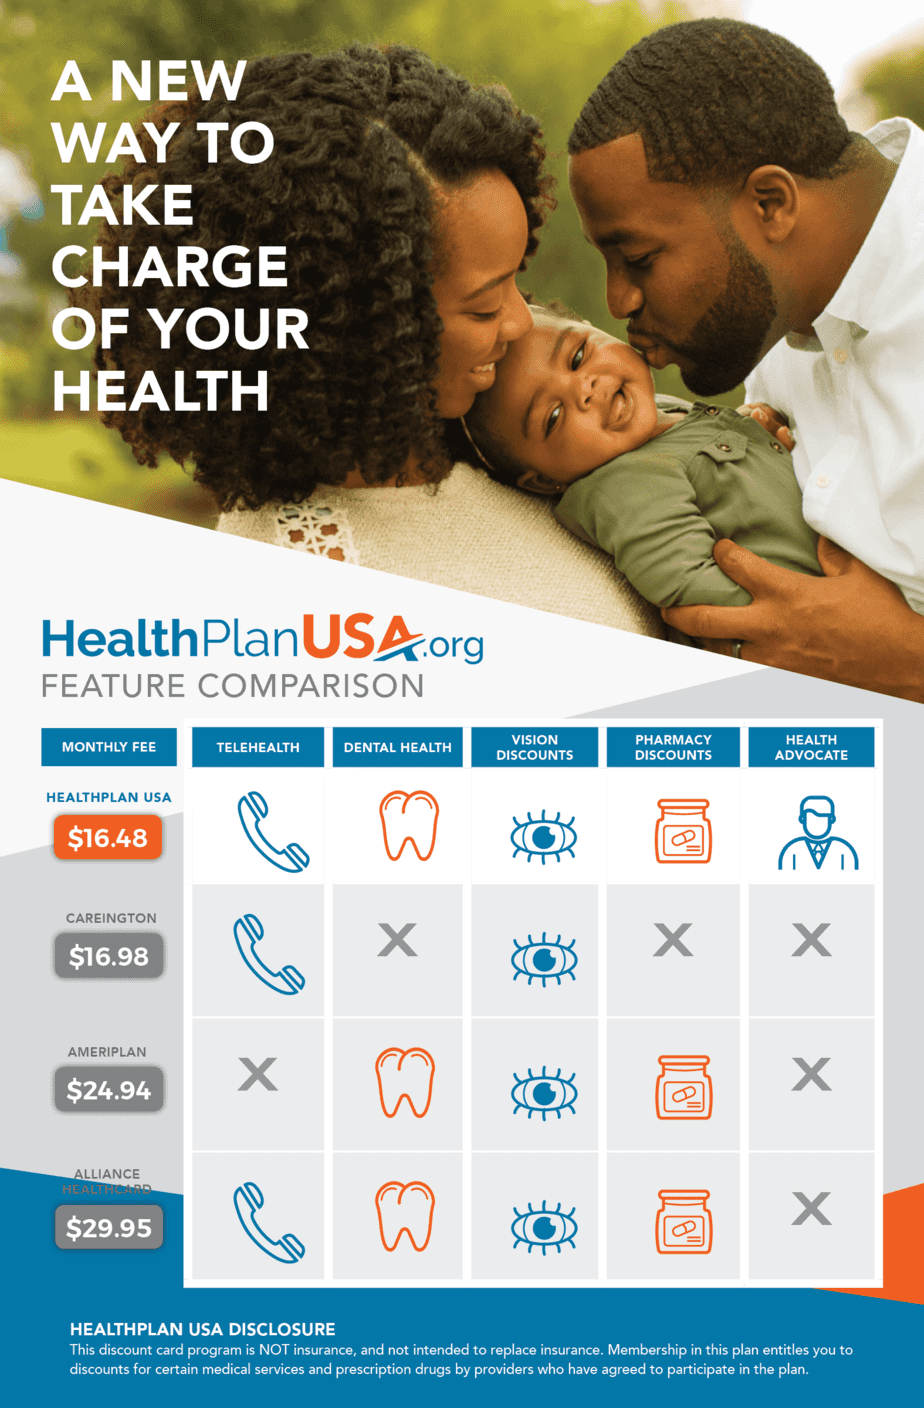 HealthPlan USA makes health care affordable for families, small business owners and individuals.